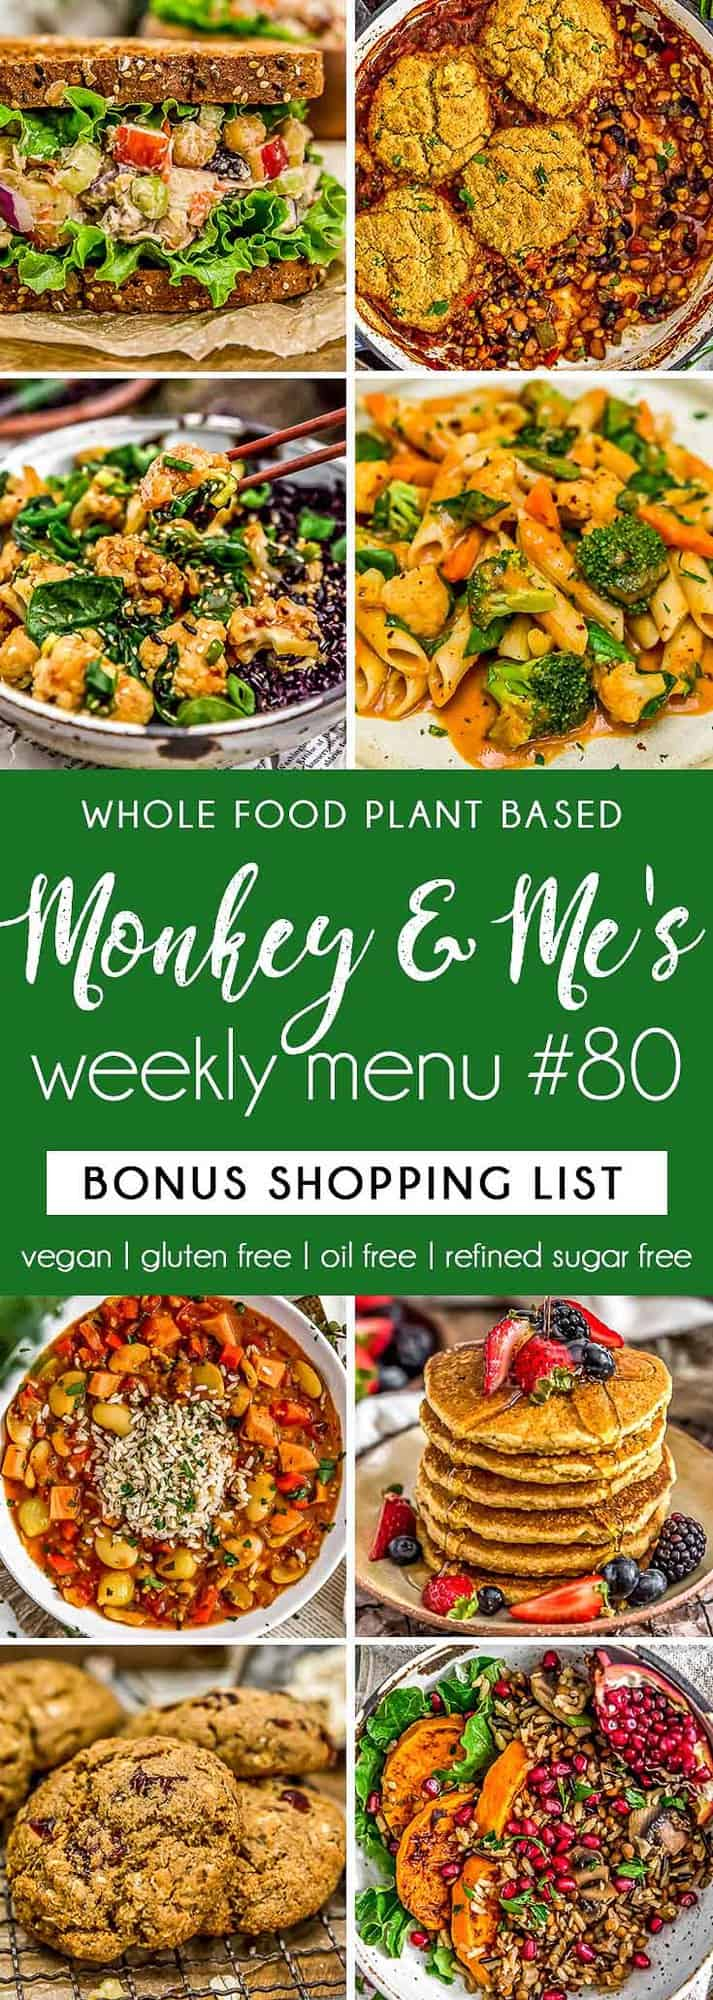 Monkey and Me's Menu 80 featuring 8 recipes